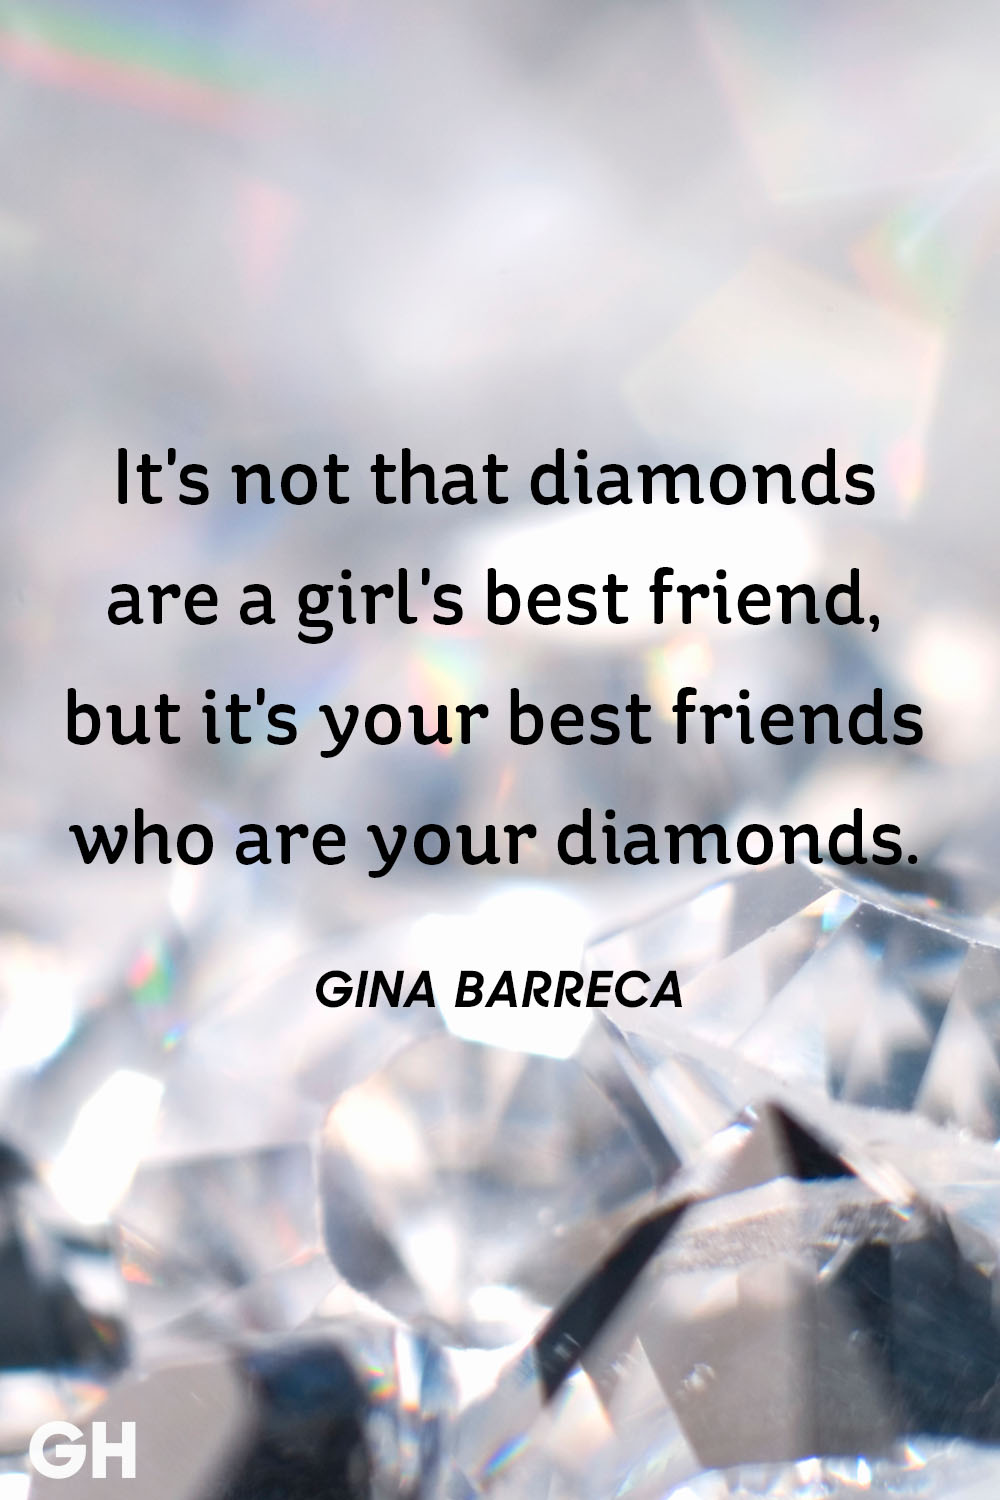 20 Short Friendship Quotes To Share With Your BFF